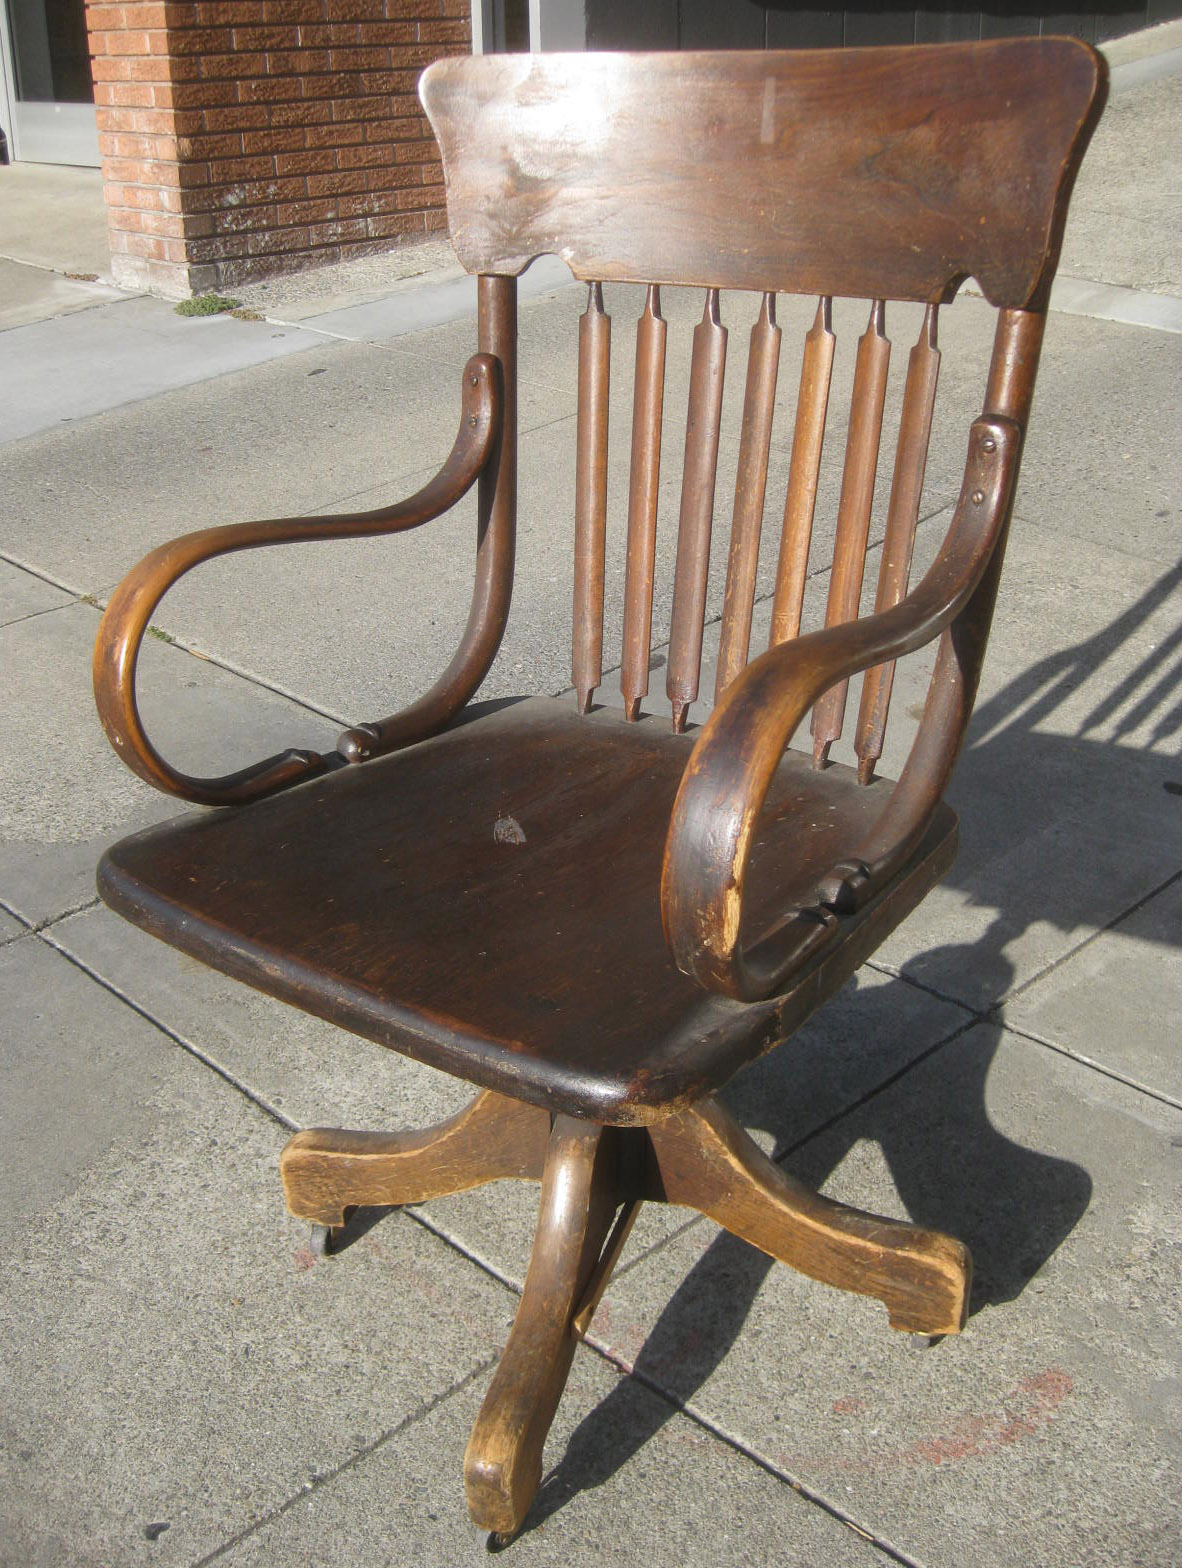 UHURU FURNITURE & COLLECTIBLES: SOLD - Wooden Office Chair - $25